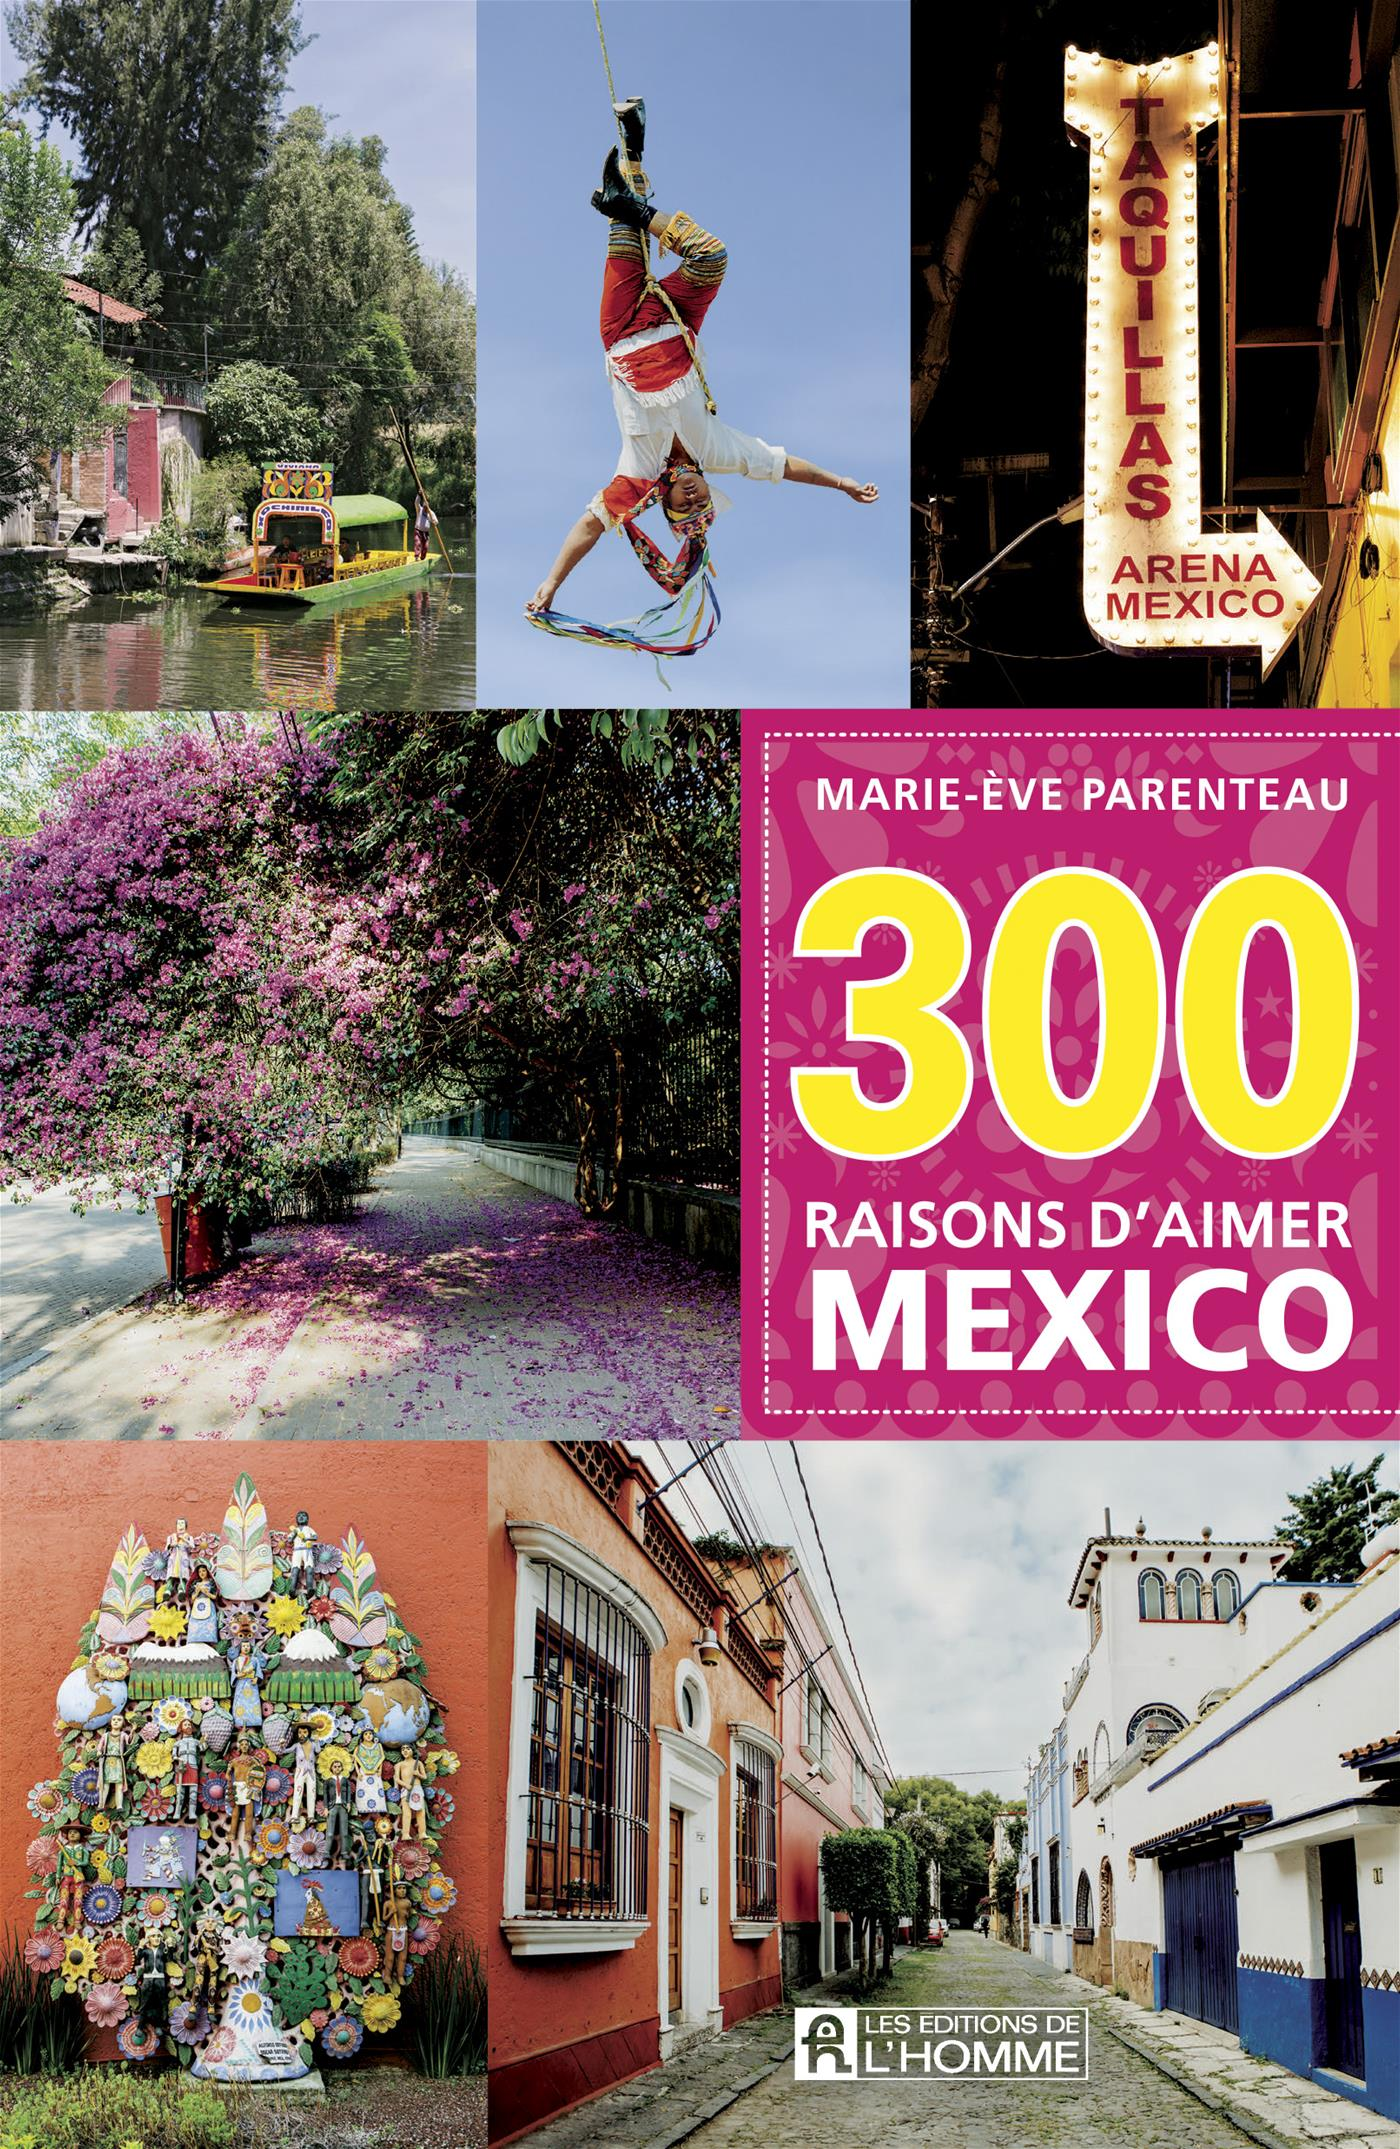 300 raisons d'aimer Mexico